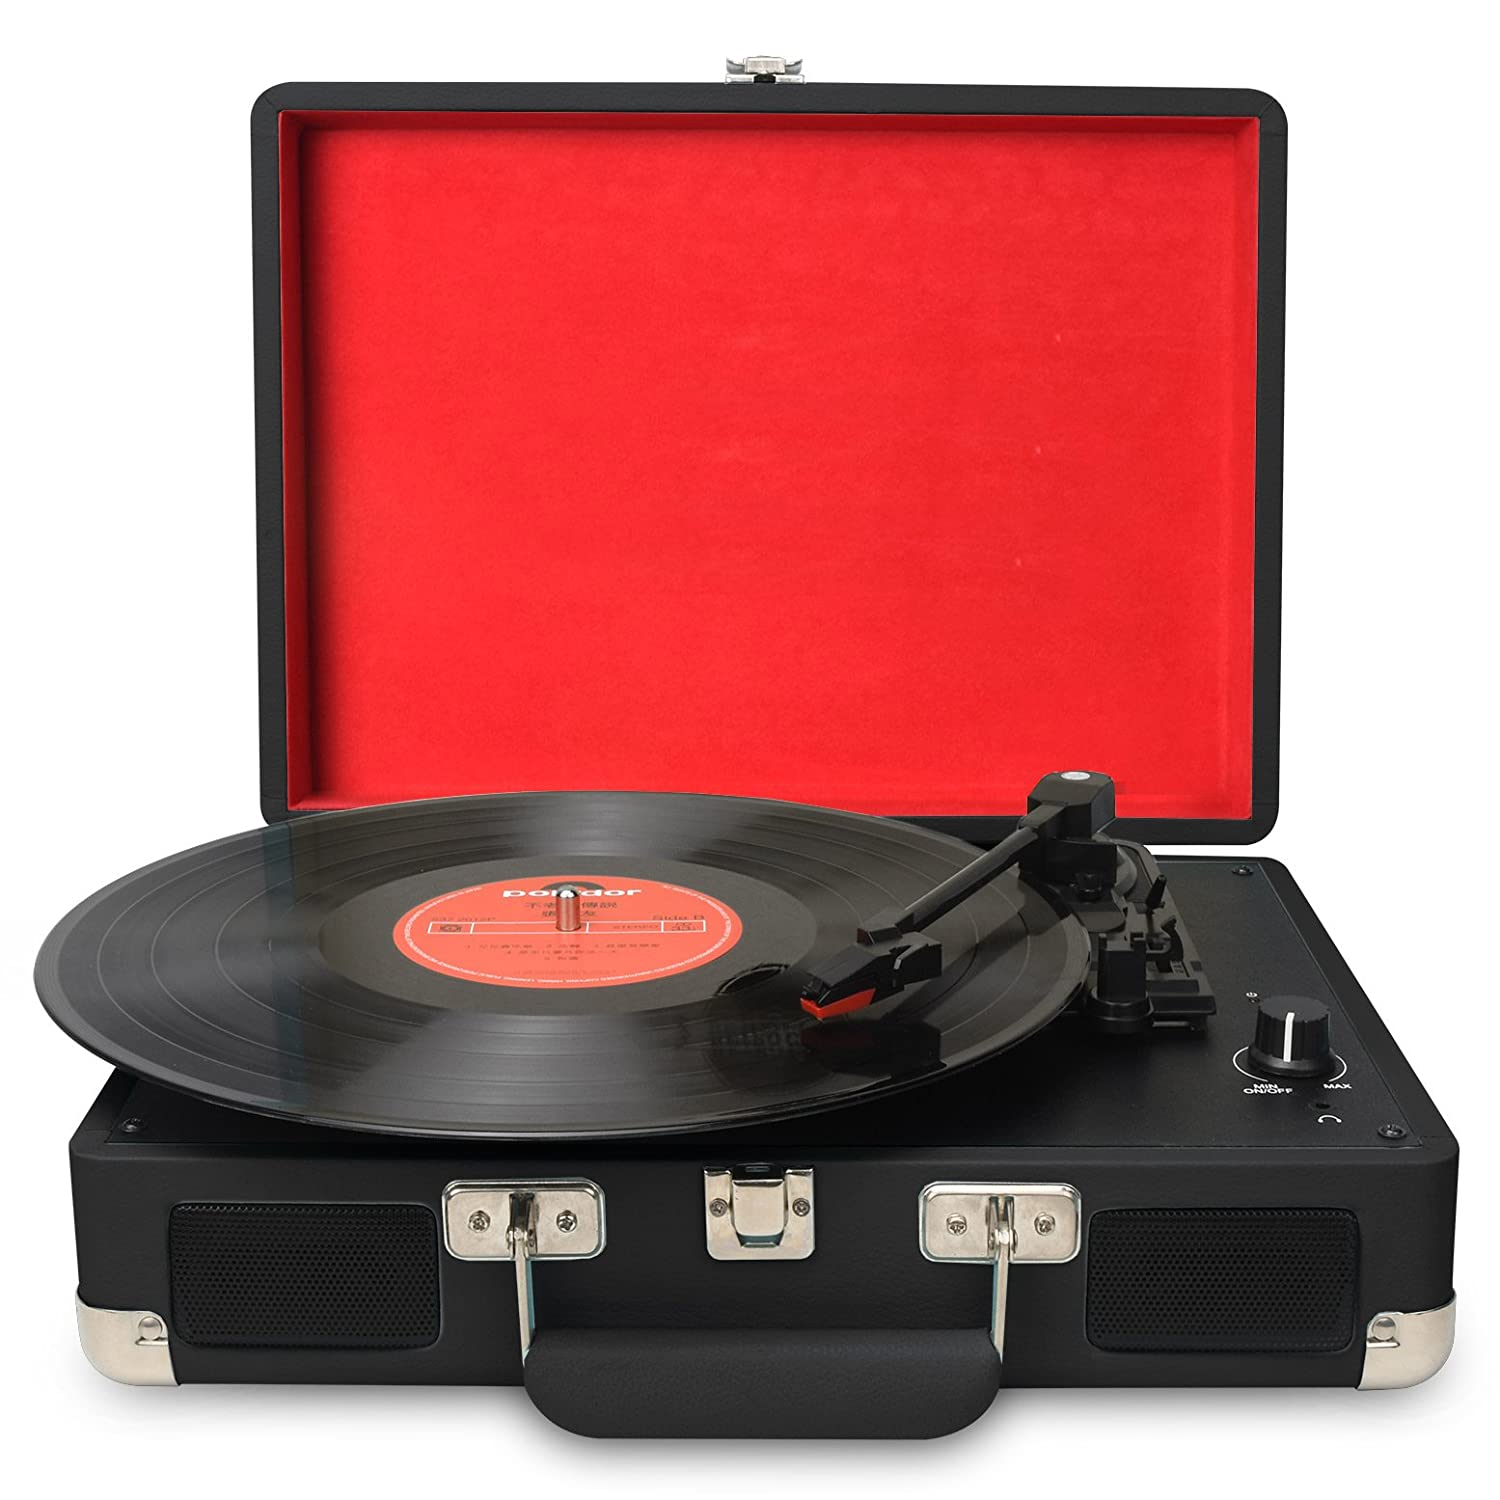 MP3 Supports USB//RCA Output//Headphone Jack DIGITNOW Turntable Record Player 3speeds with Built-in Stereo Speakers Mobile Phones Music Playback,Suitcase design